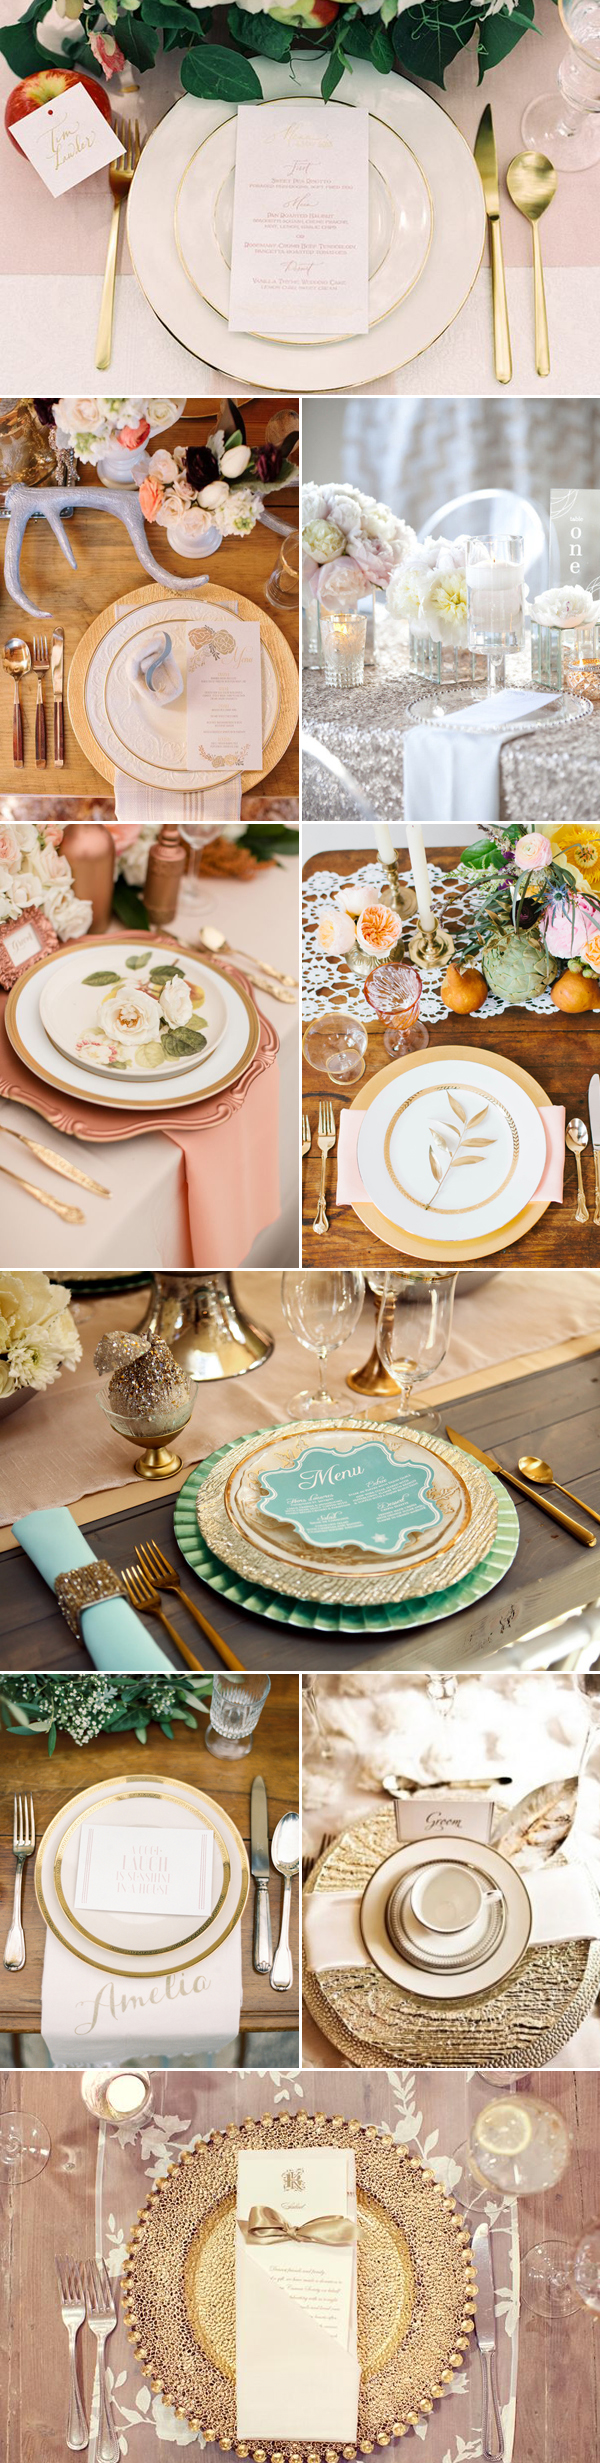 20 Winter Wedding Place Setting Ideas Praise Wedding